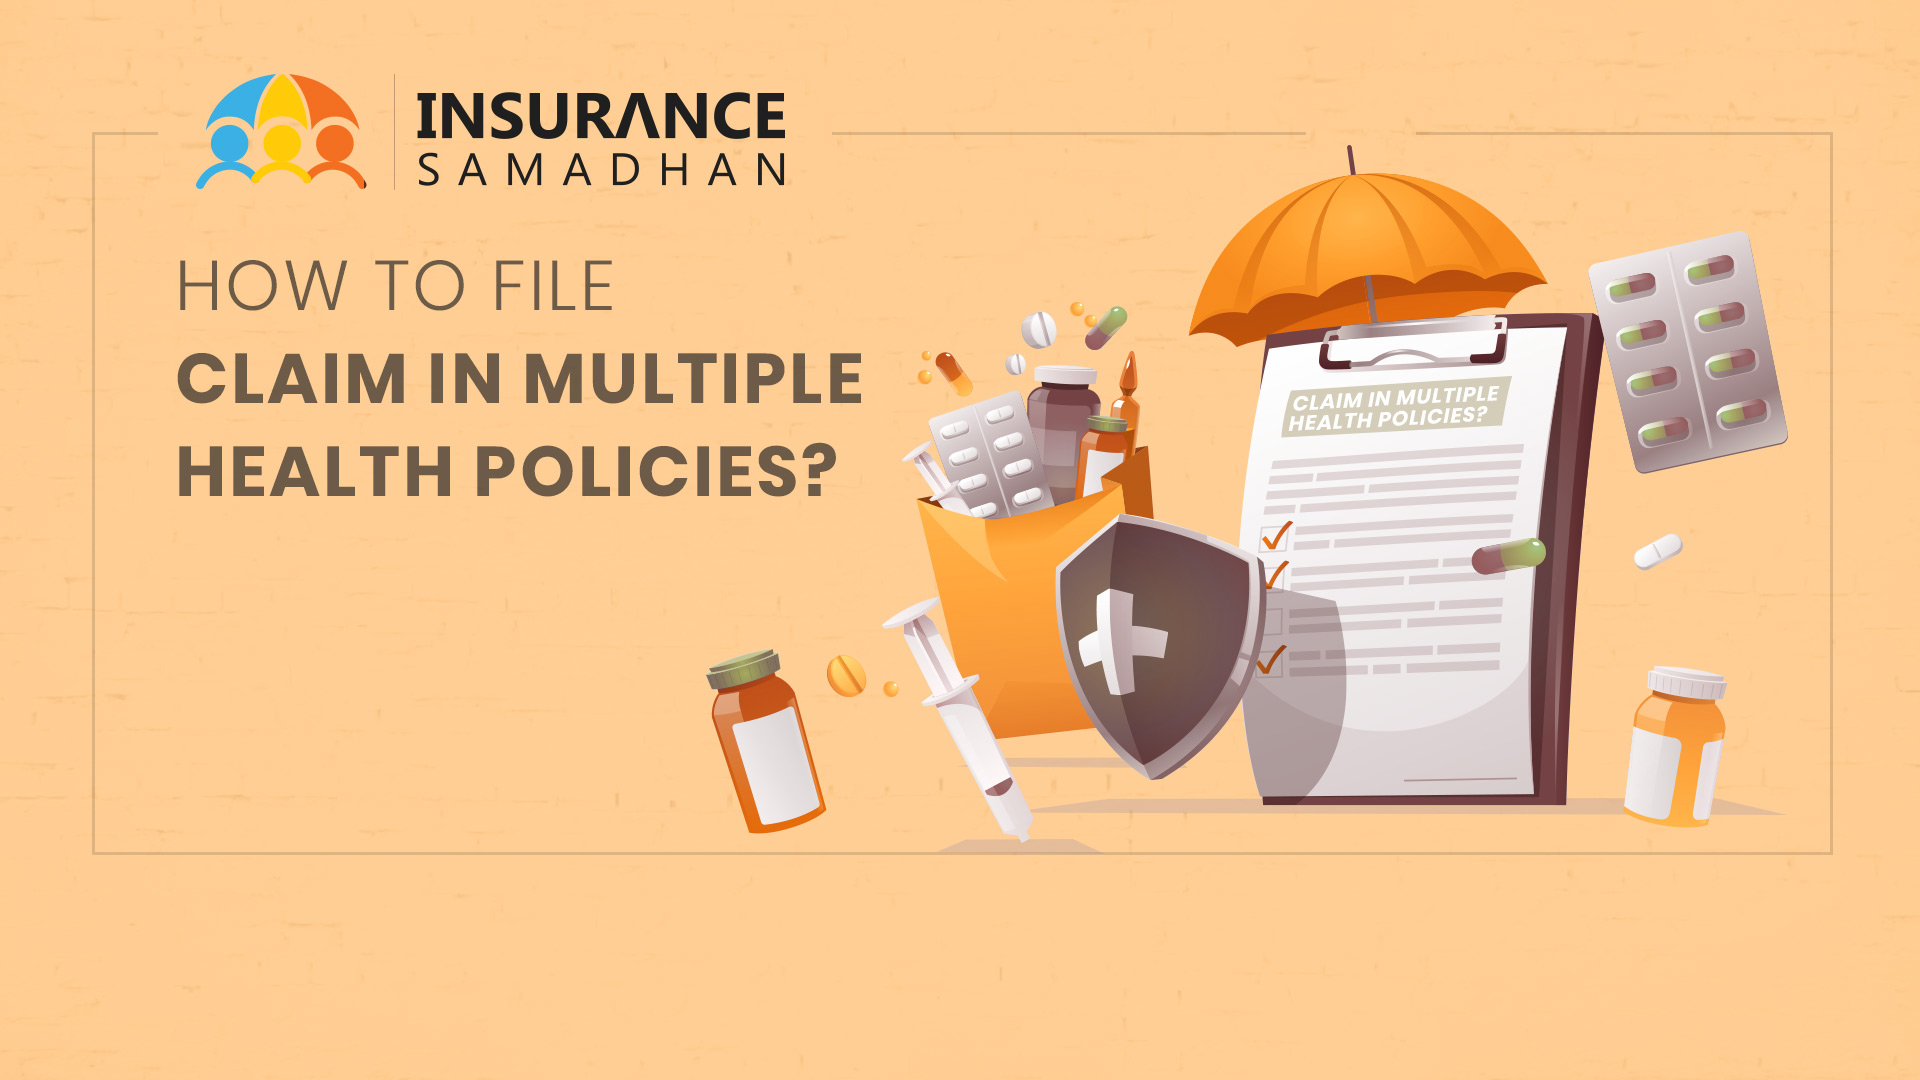 How to File Claim in Multiple Health Policies?